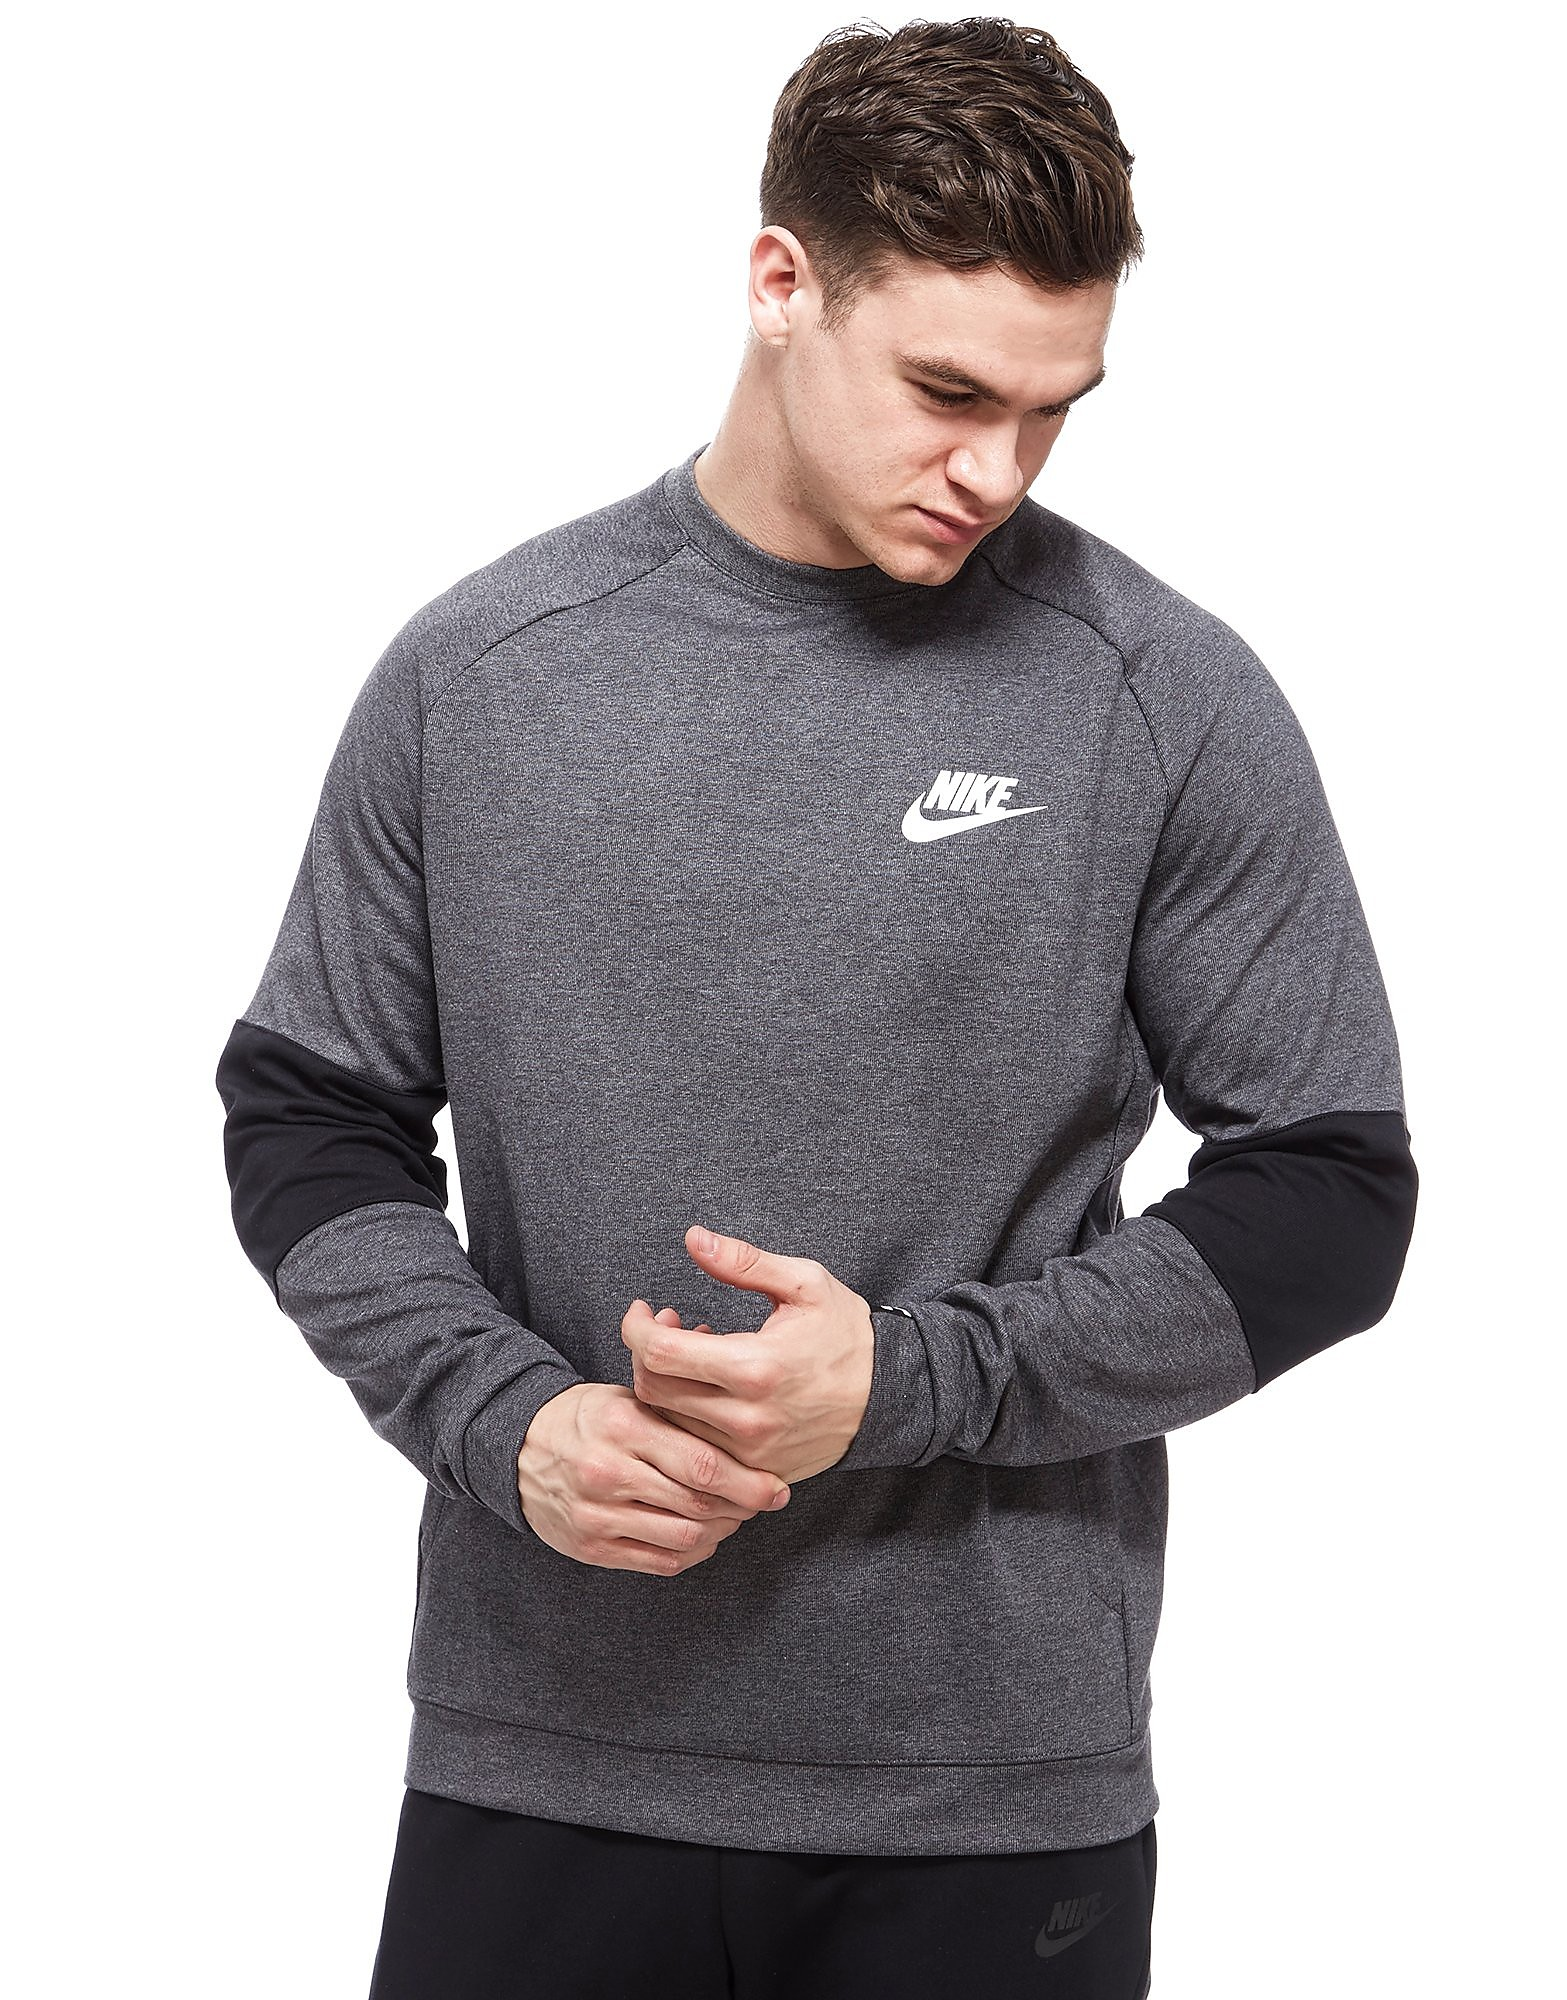 Nike Advanced Crew Sweatshirt